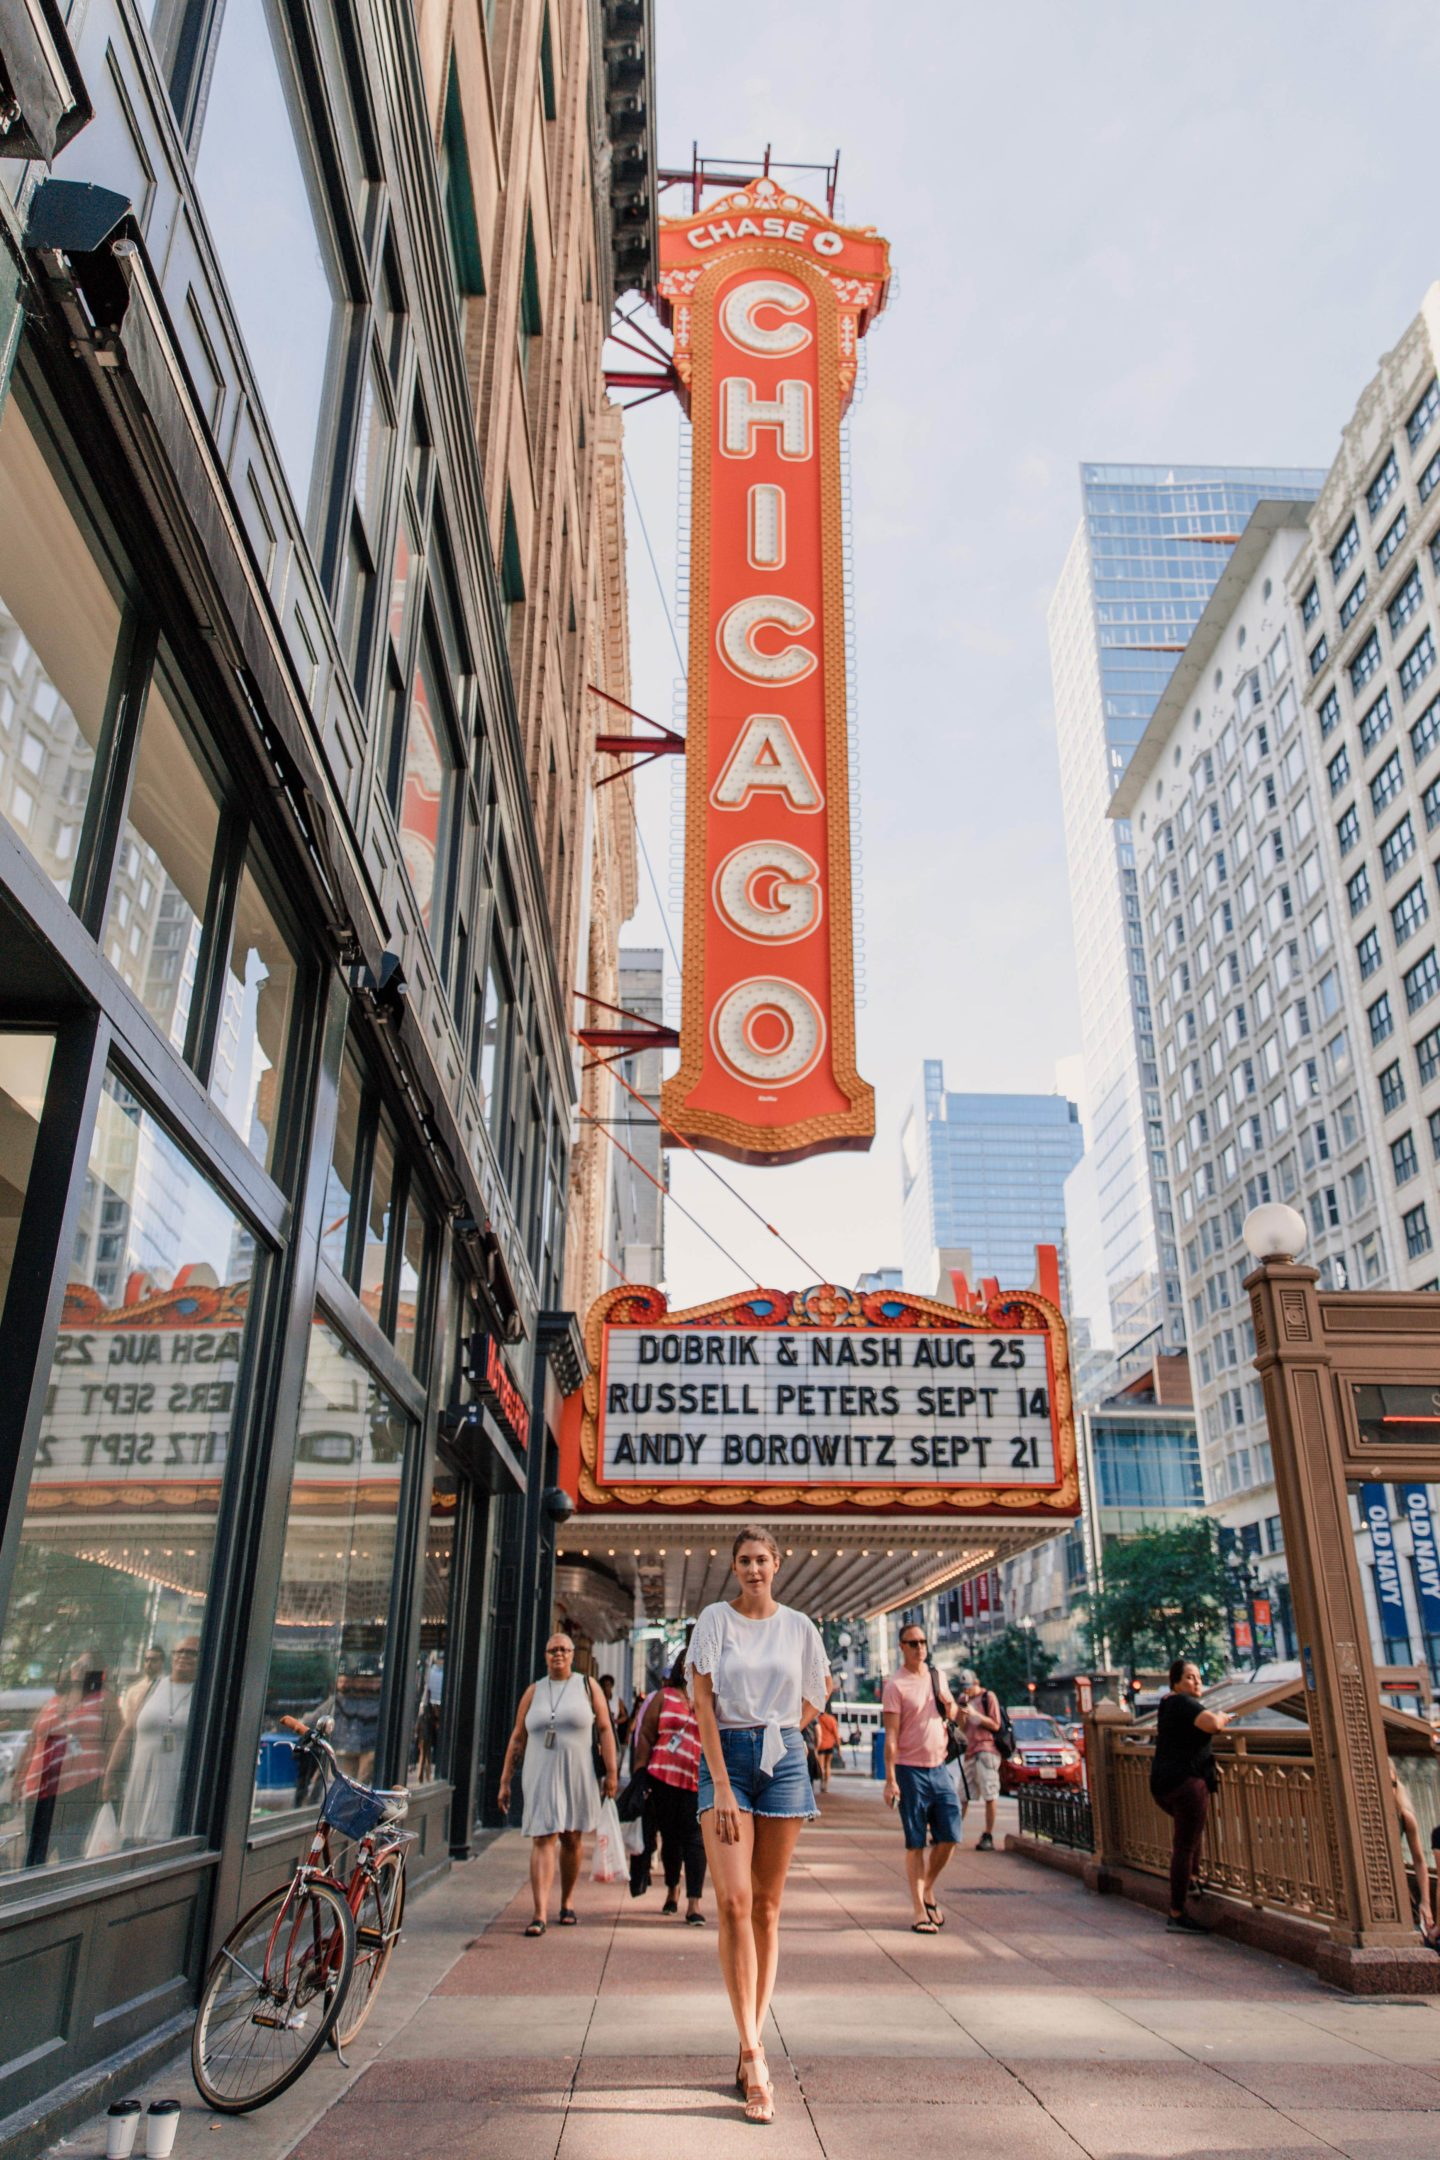 Chicago Travel Guide | What to Do: Chicago Theater